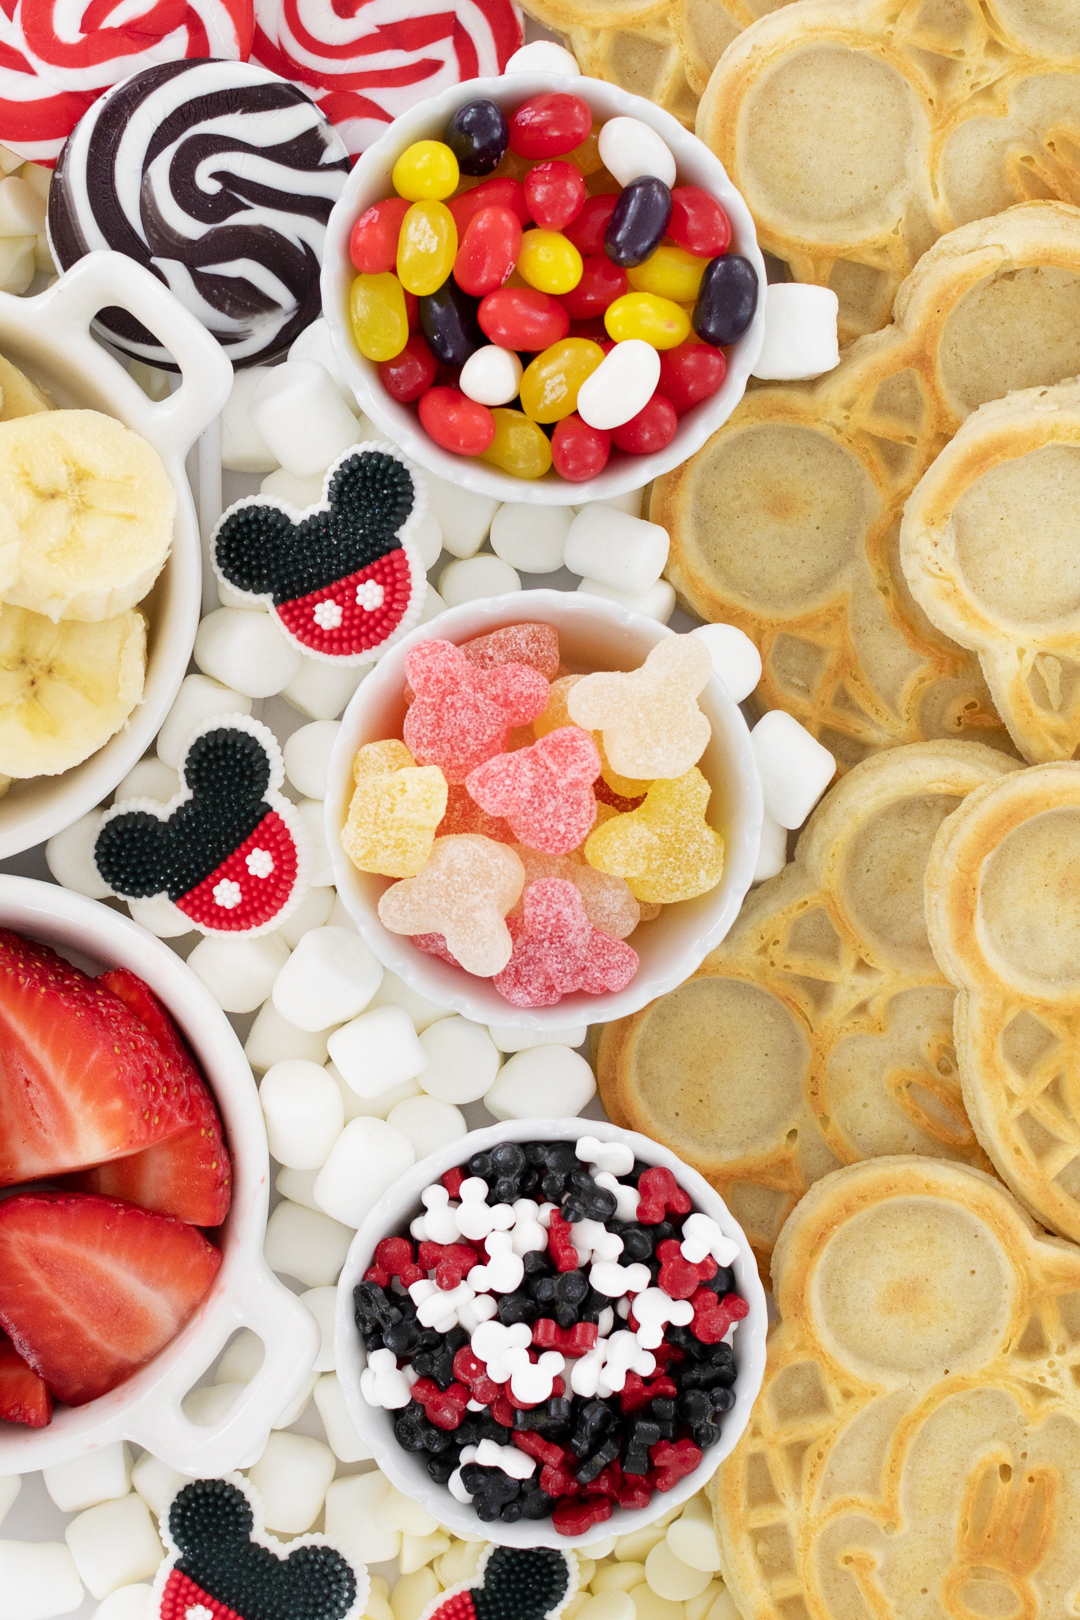 mickey mouse sprinkles, candies and jelly beans up close